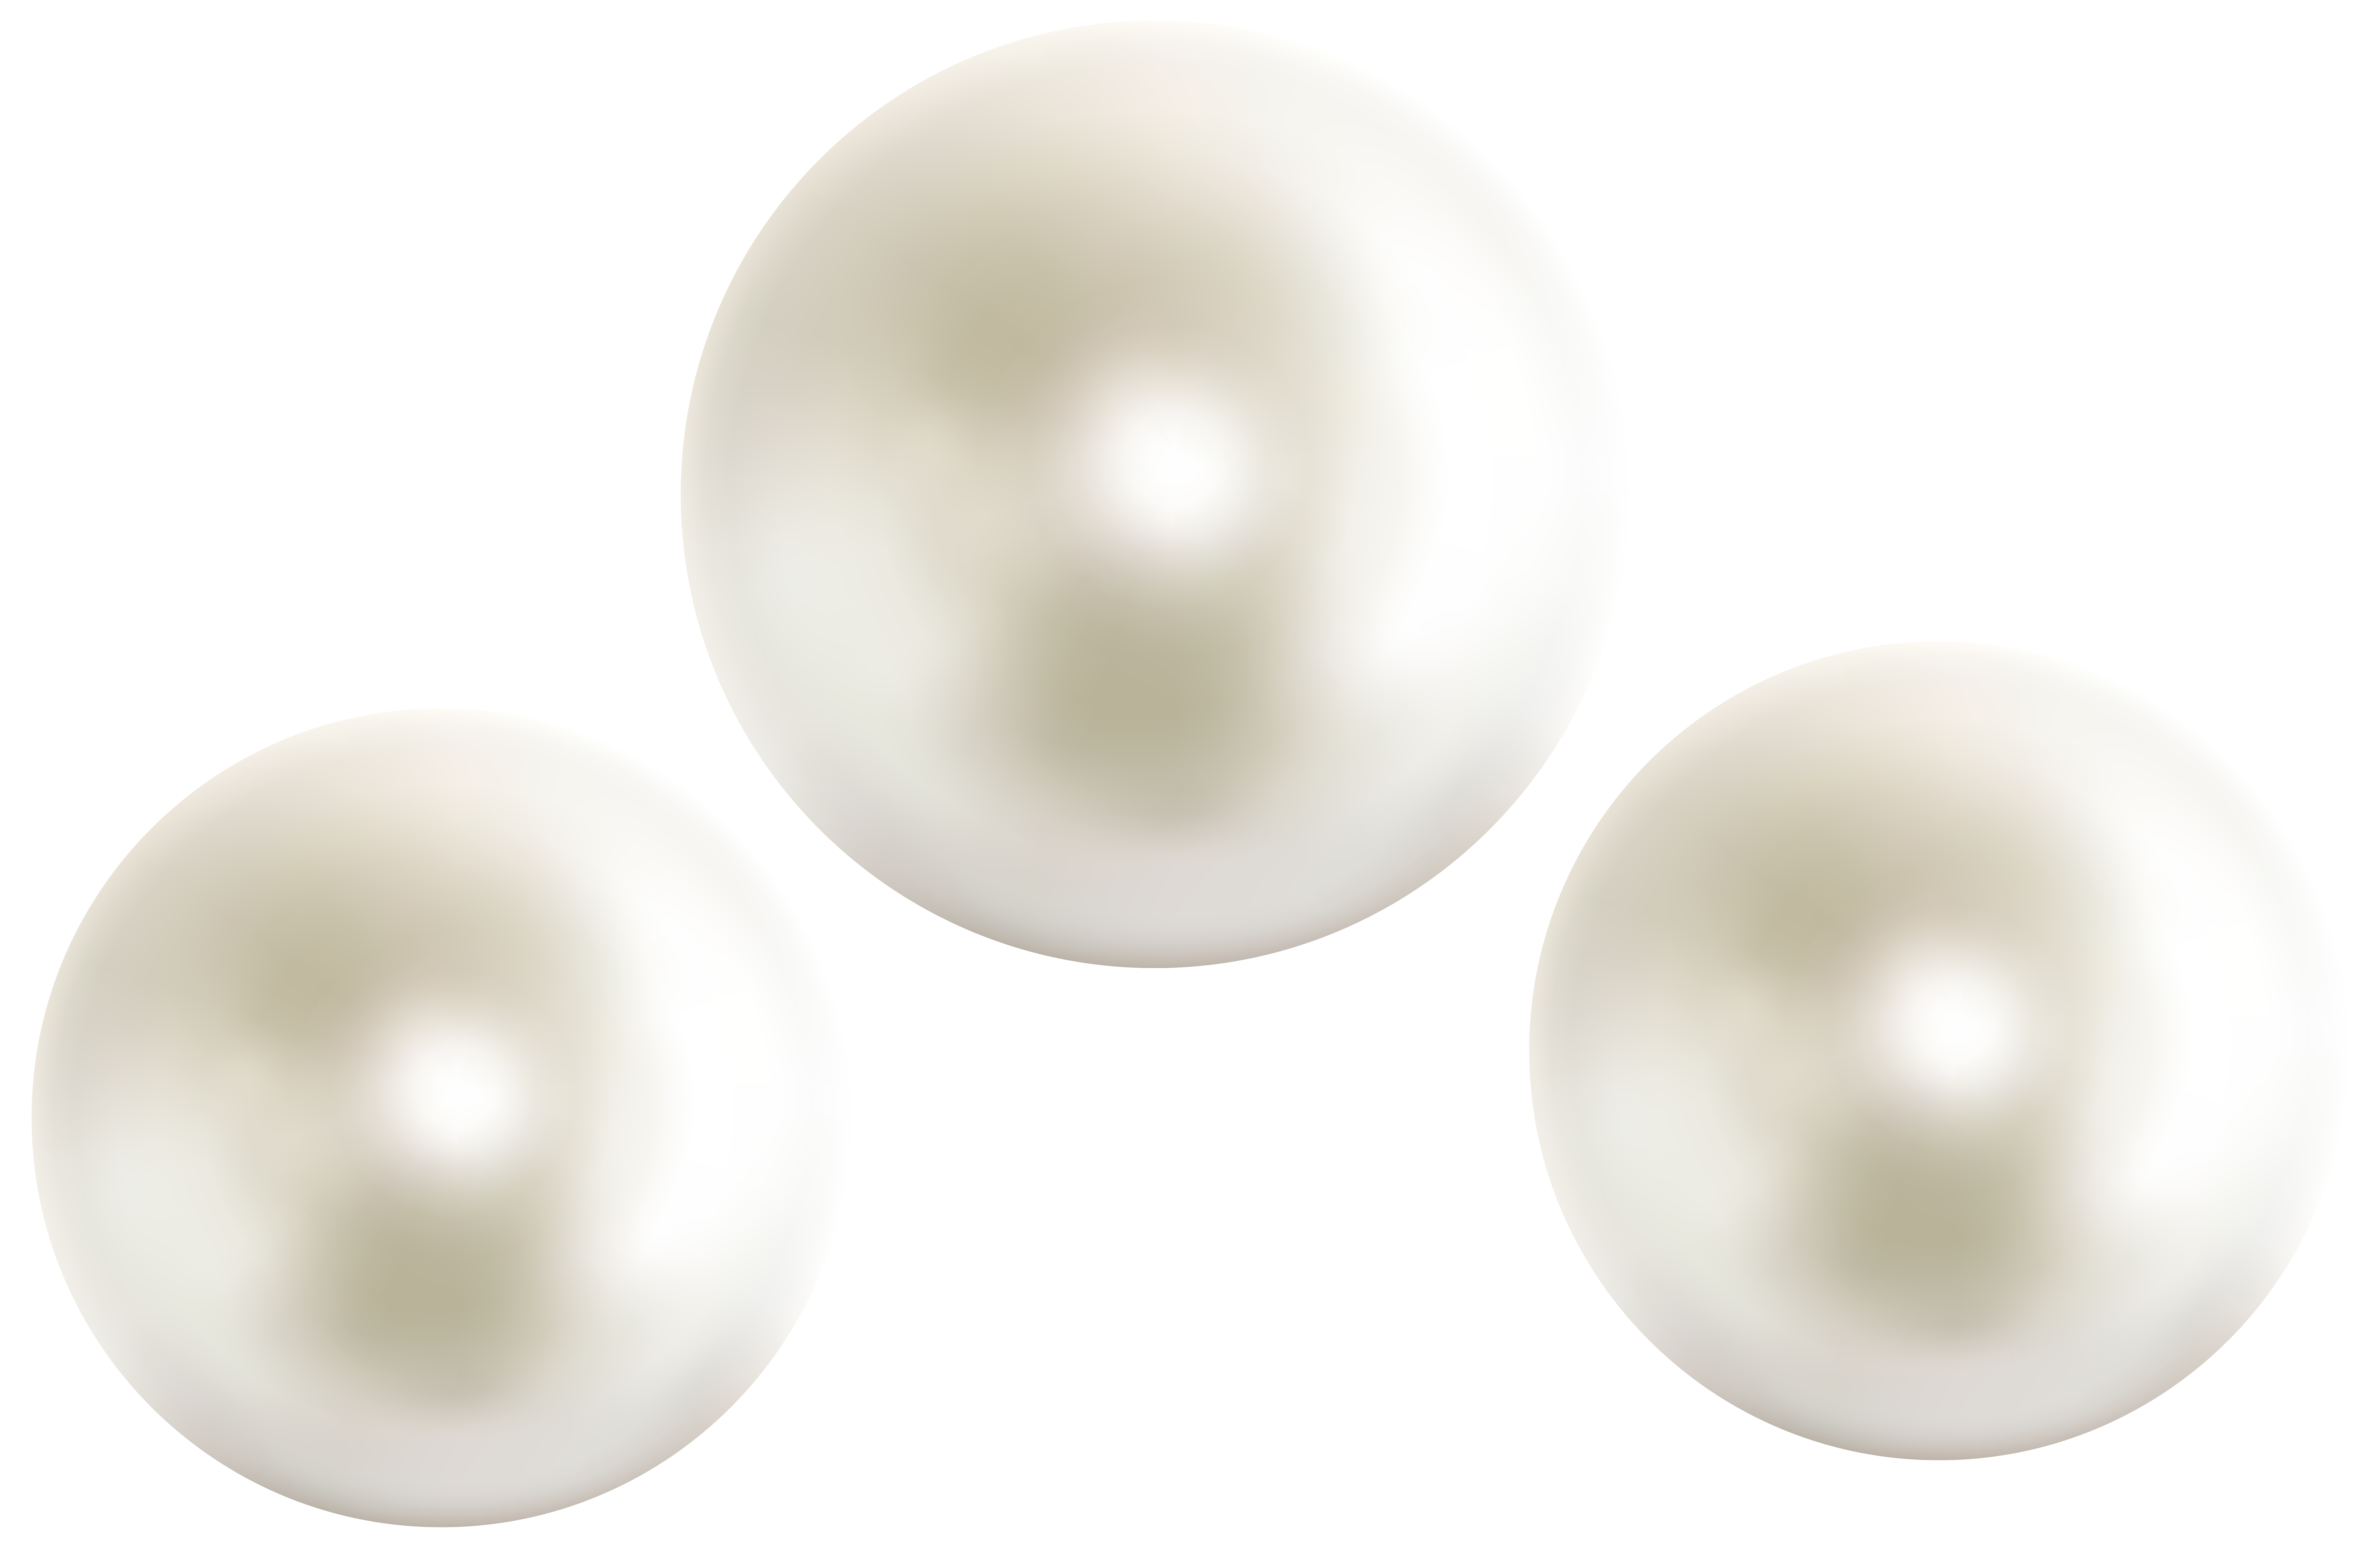 clip stock Png clip art image. Pearls clipart